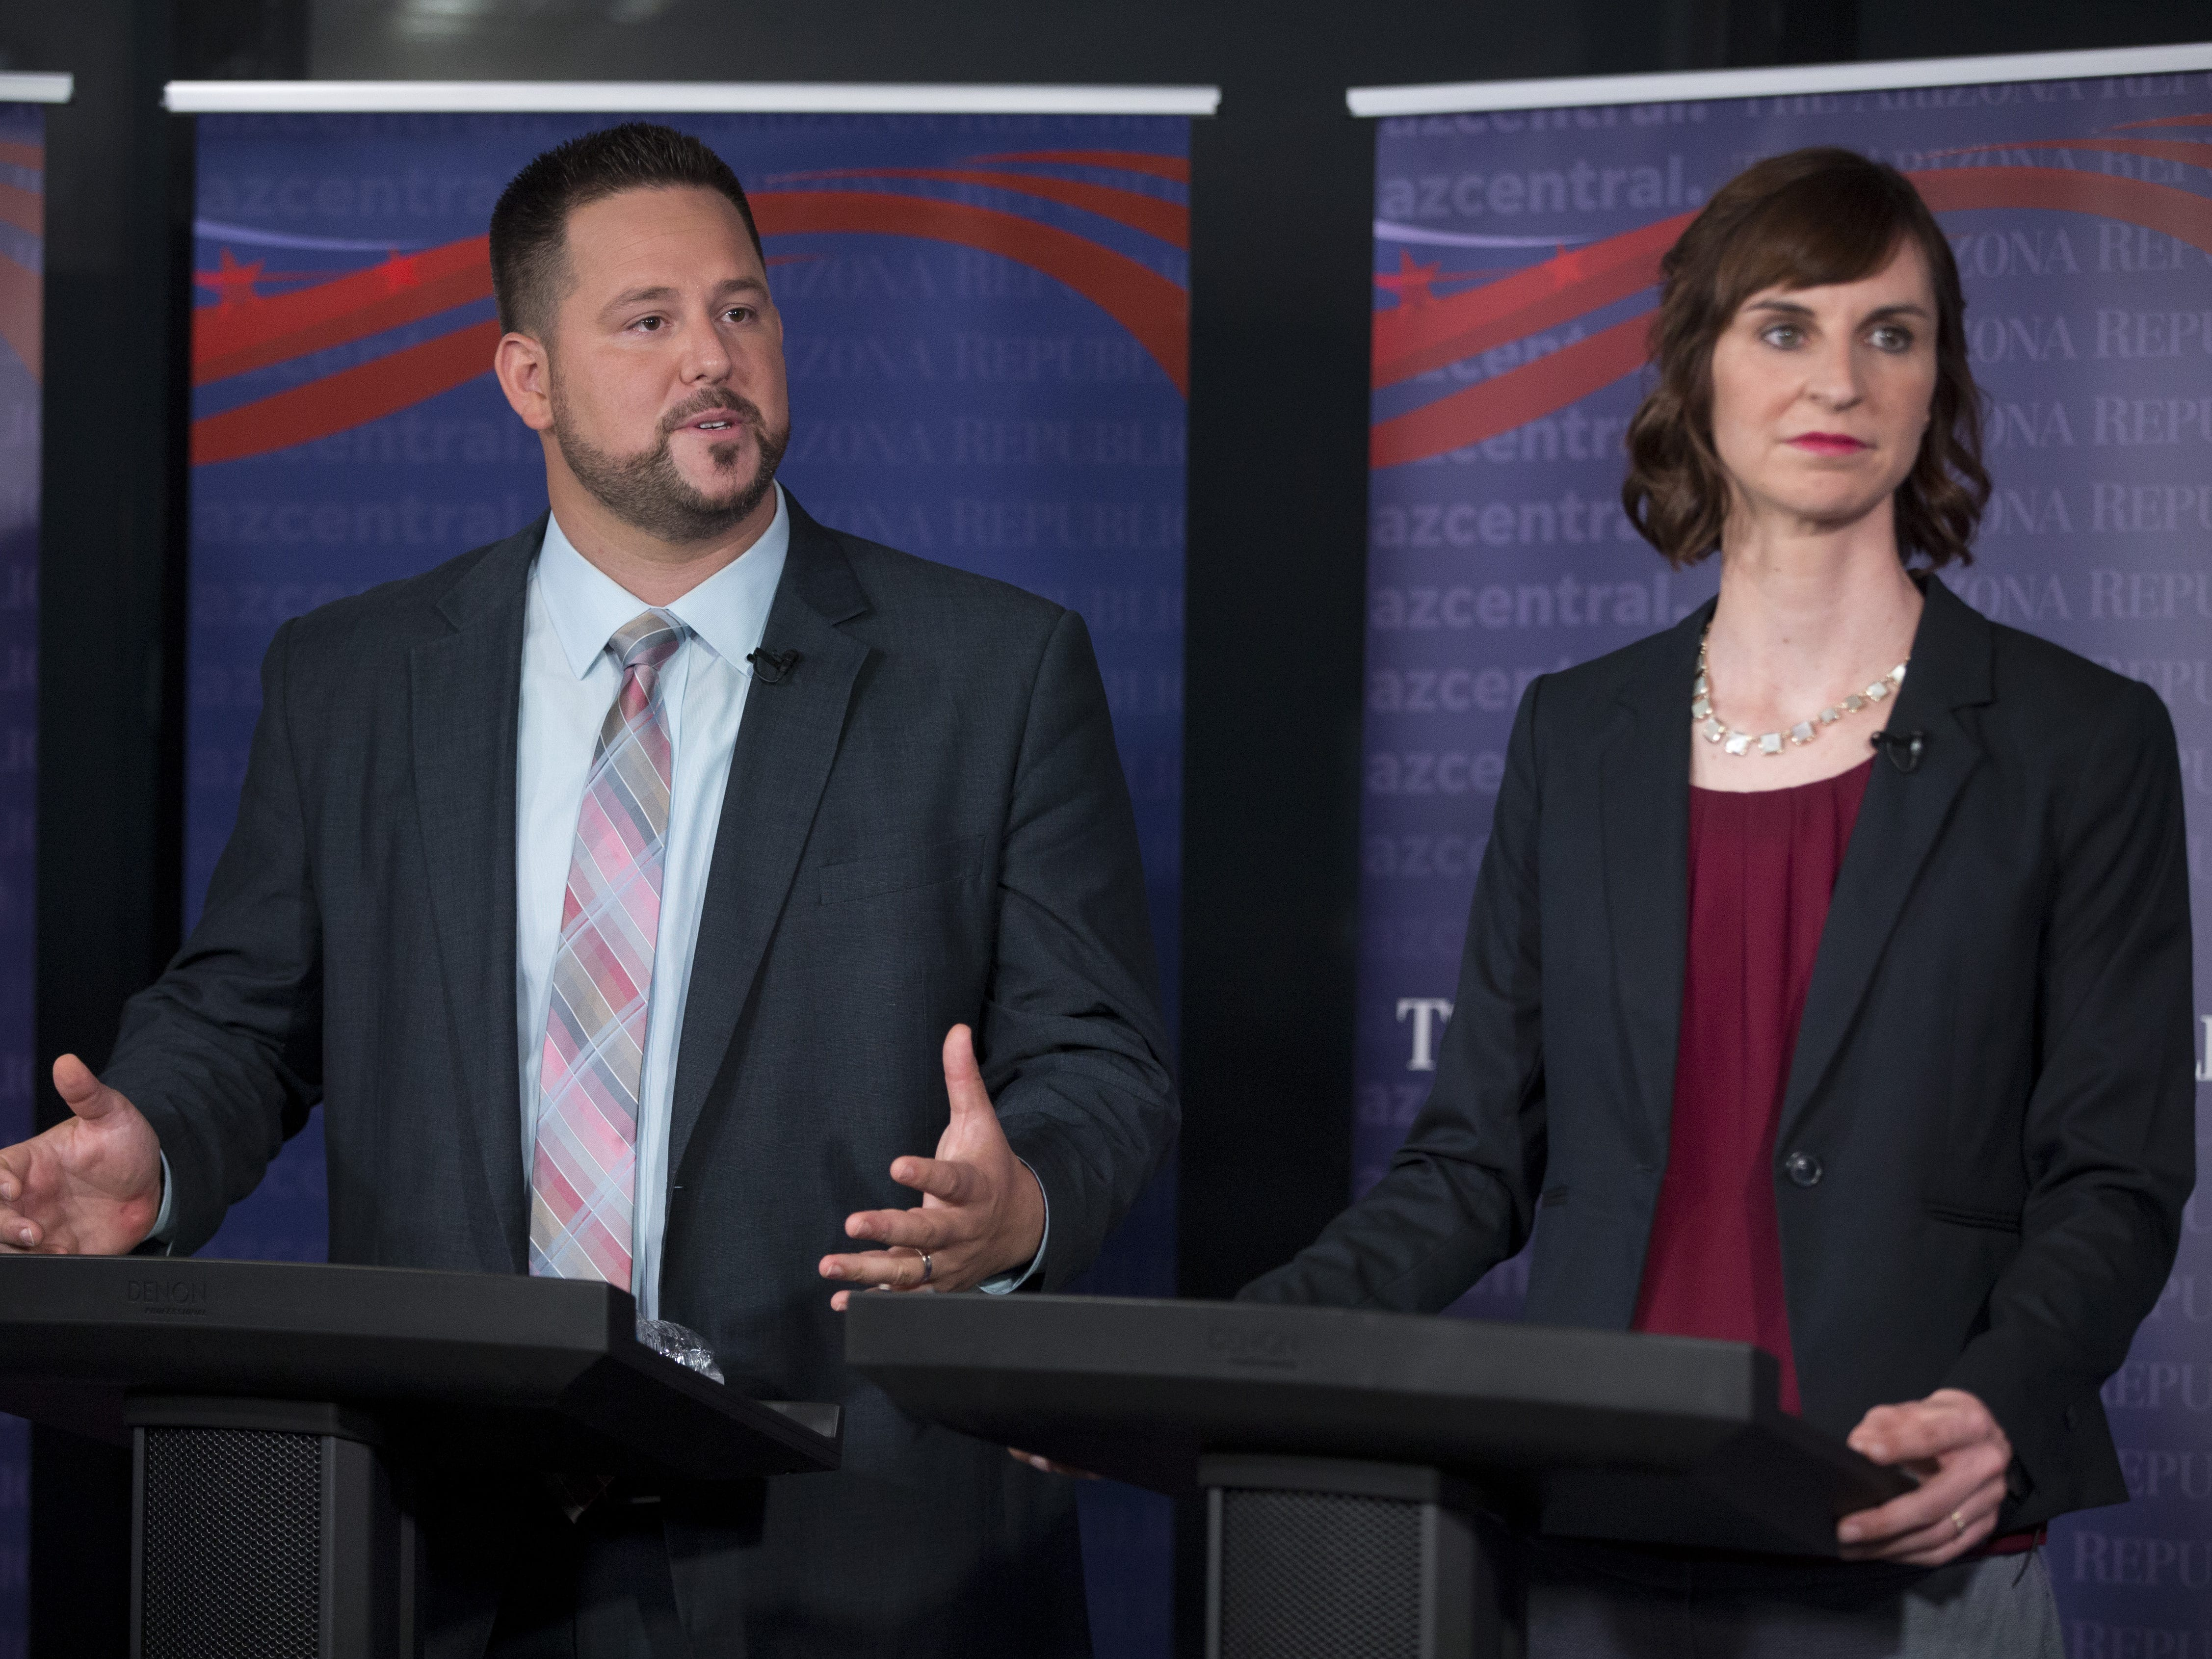 David Schapira, left, and Kathy Hoffman Democratic candidates for state superintendent of public instruction debate at azcentral.com on August 2, 2018.